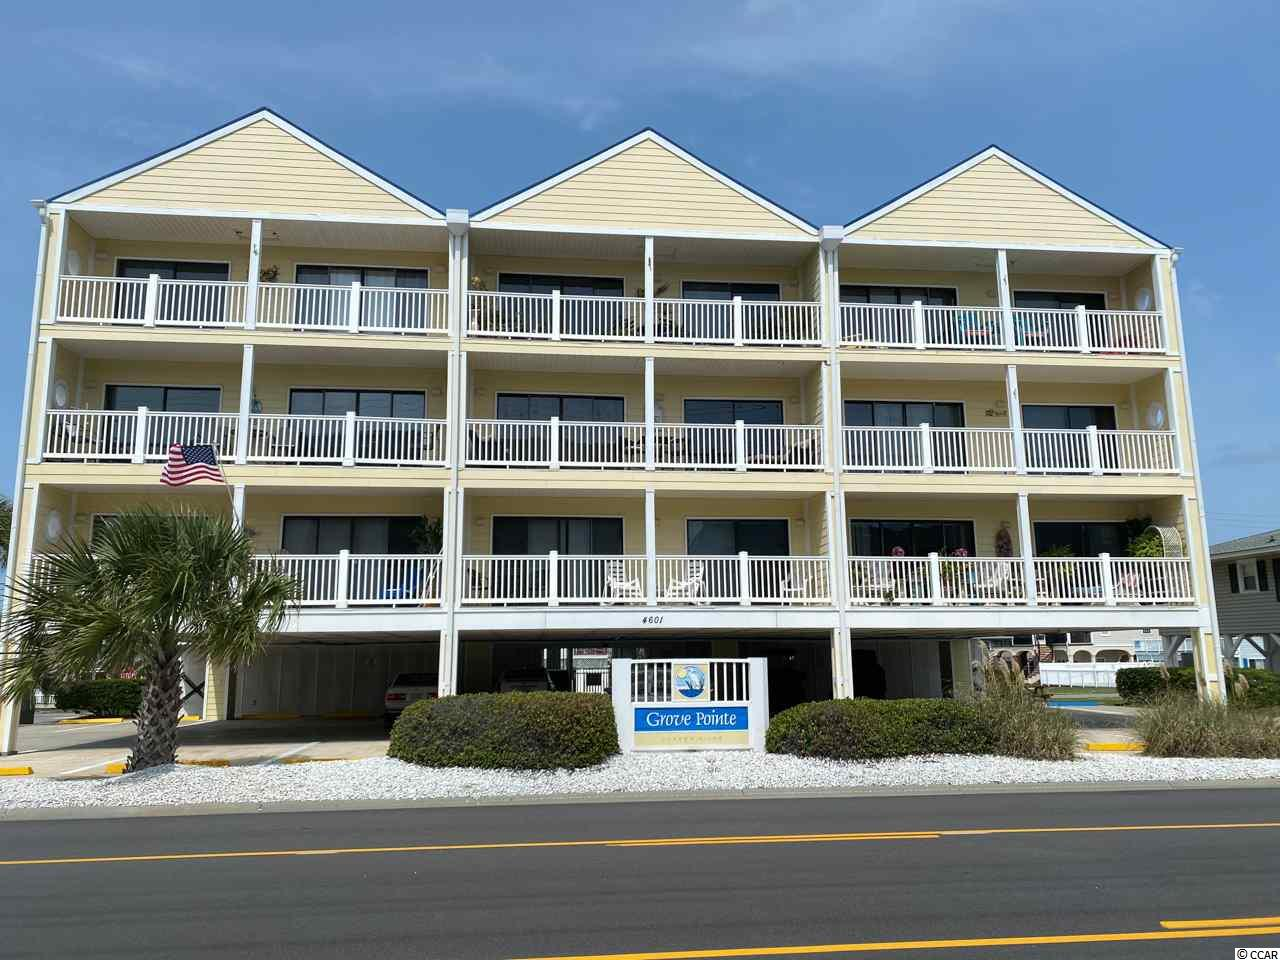 Gorgeous turn key 2 bedroom 2 bath second row condo in the very sought after Grove Pointe Condos in Cherry Grove. This unit has all the upgrades you could want with ocean views and easy beach access across the street. The unit has sliding glass doors to a balcony that runs the length of the condo with added screen doors to enjoy the breeze. Master bedroom has private balcony entrance and plenty of space. The unit has beautiful remodeled bathrooms, kitchen and comes furnished. There is storage area under the building for your beach toys and chairs and also a storage closet outside the unit. This a perfect second home or rental property to start enjoying right away. Grove Pointe Condos is only a few blocks from the Cherry Grove fishing pier and a short golf cart ride or walk to grocery, shops and dinning.